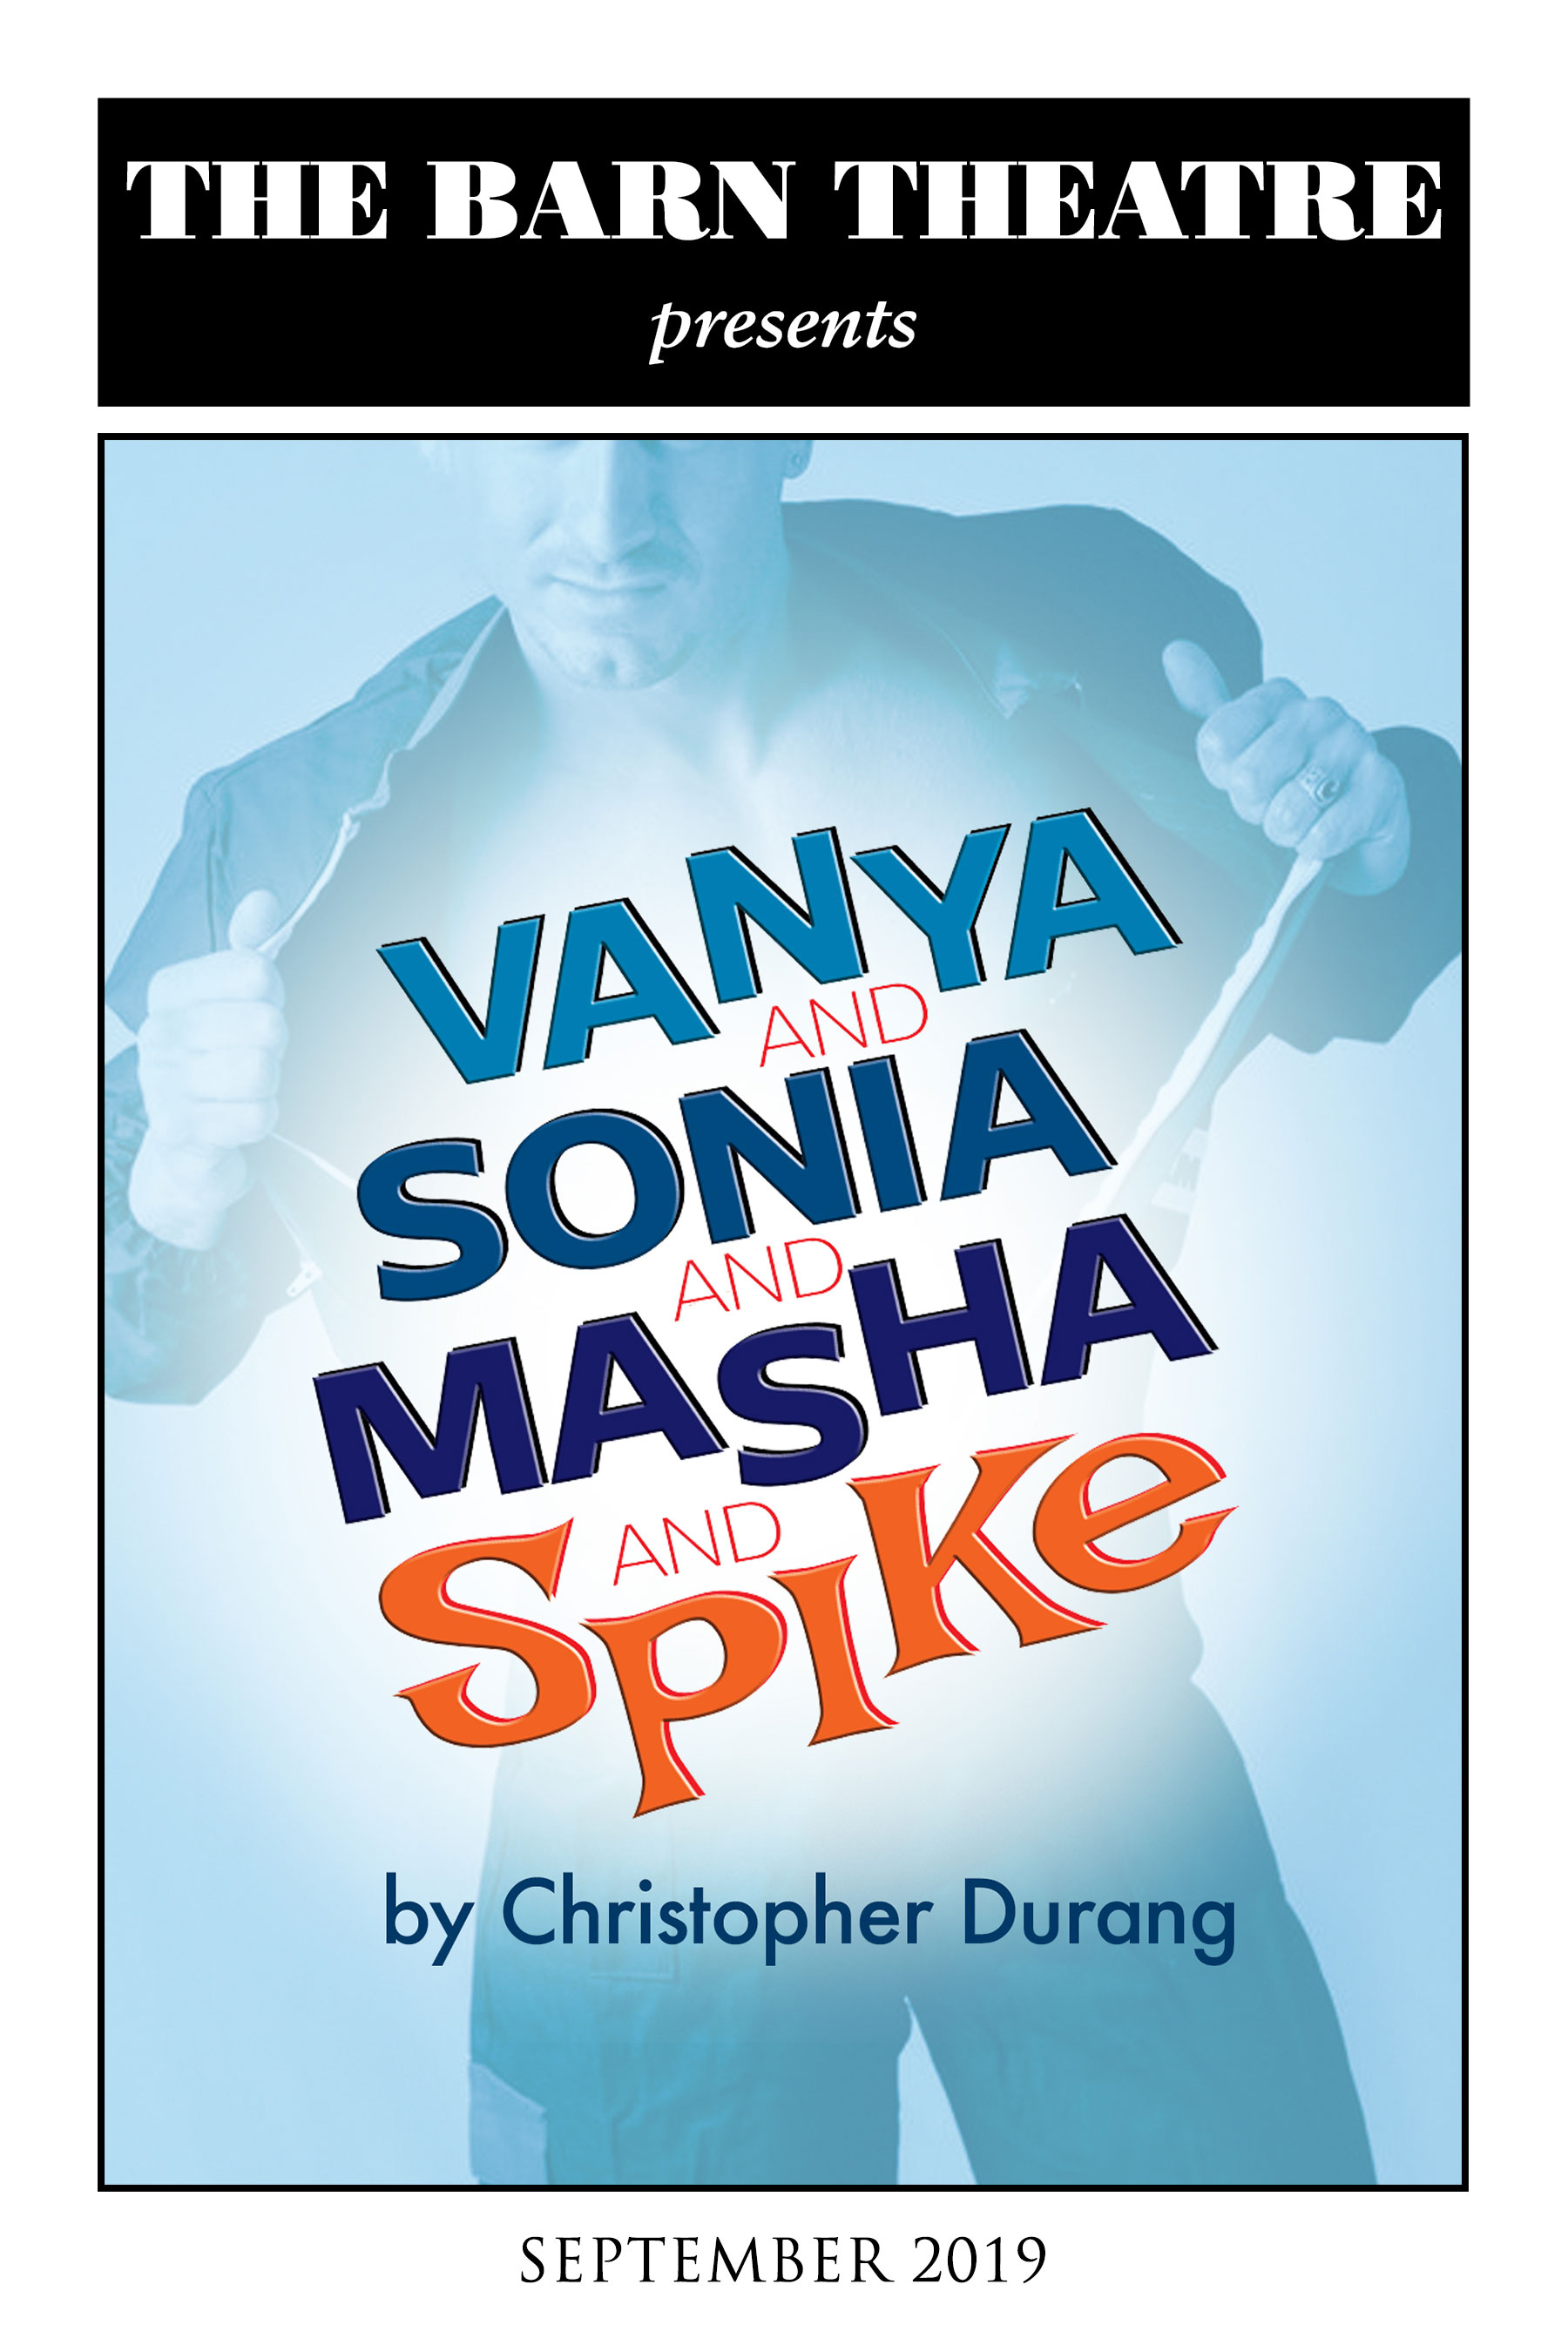 Program Cover for Vanya and Sonia and Masha and Spike